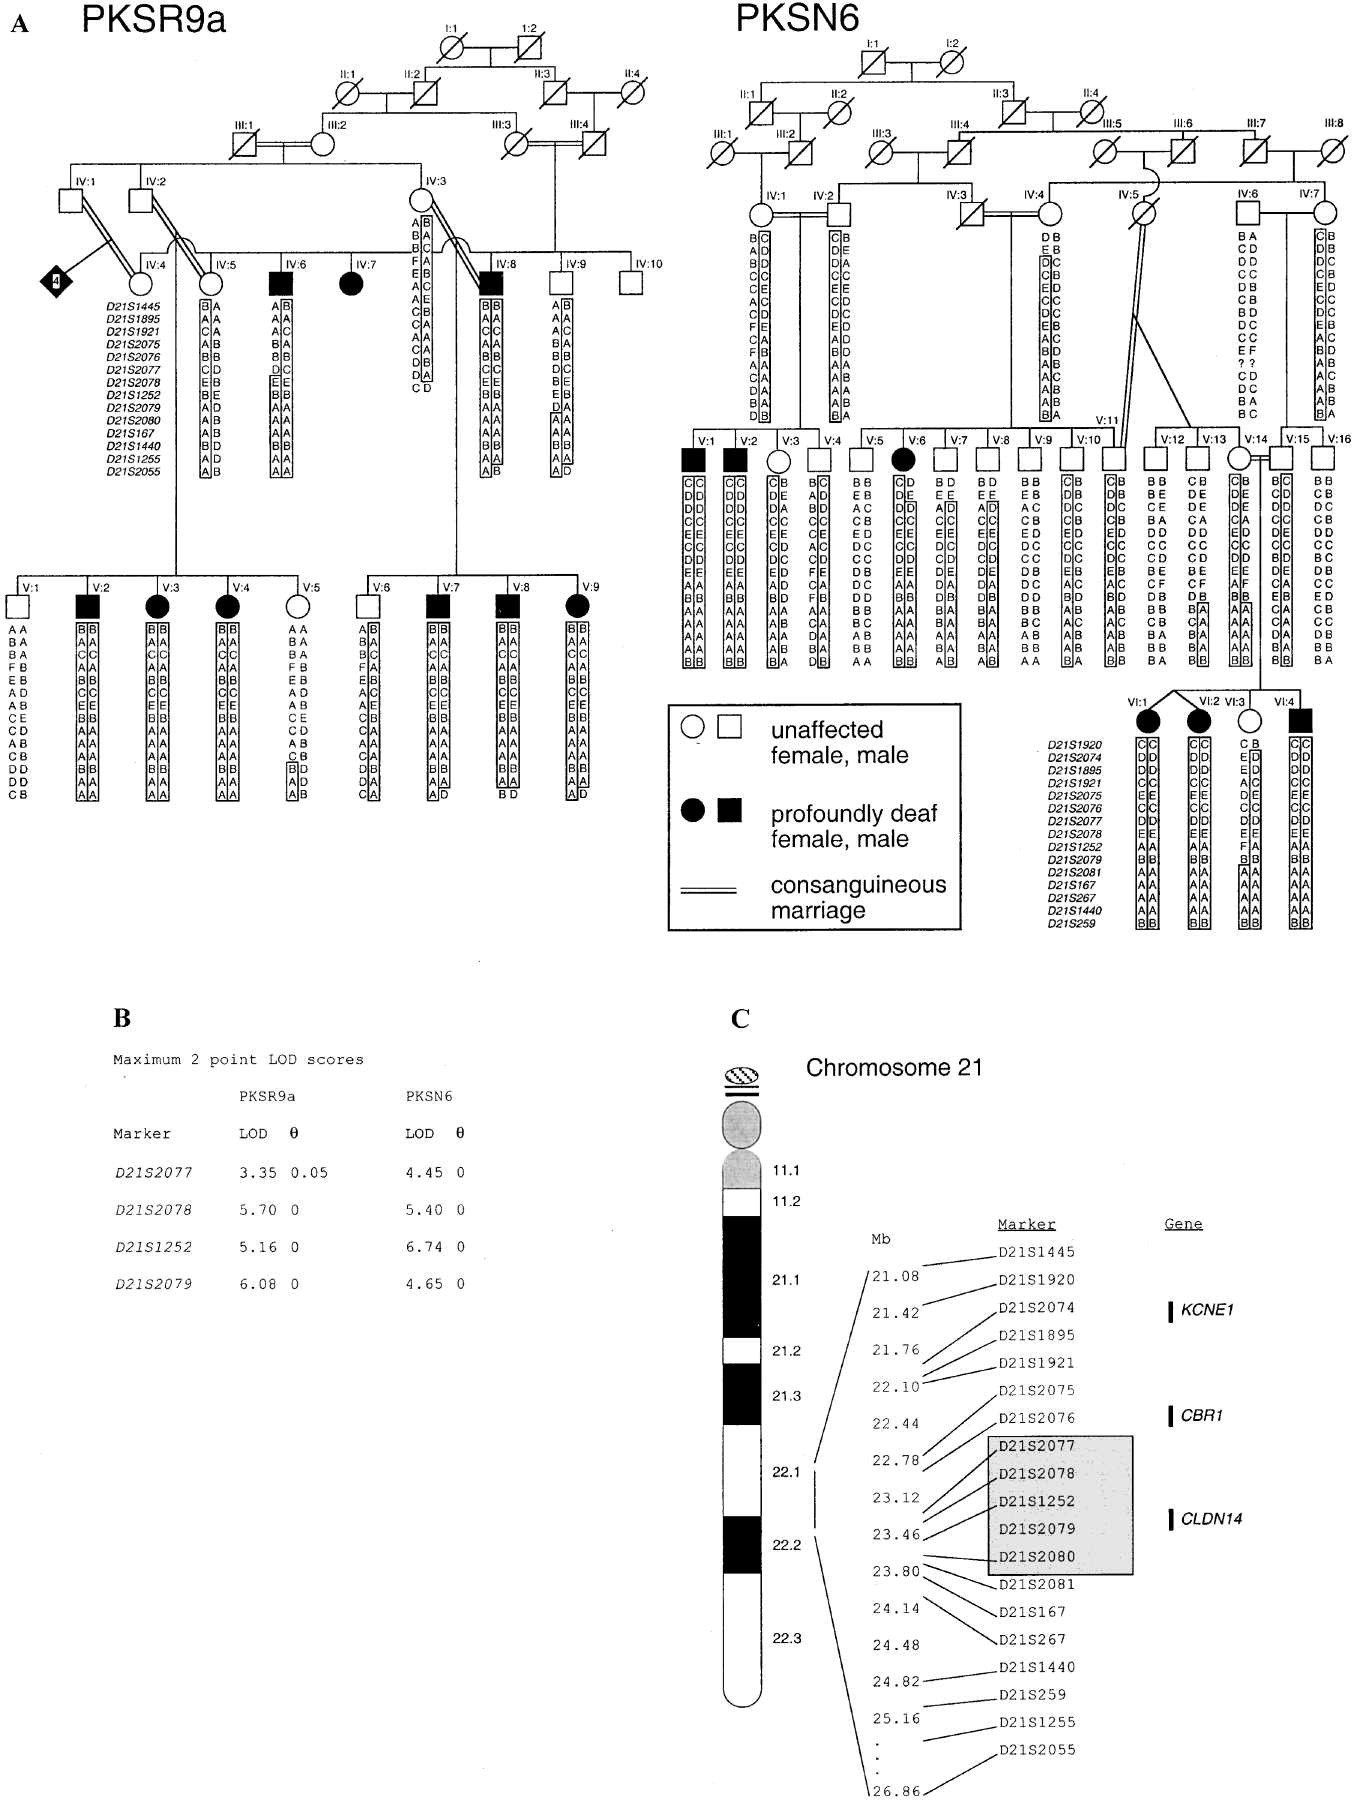 Mutations In The Gene Encoding Tight Junction Claudin 14 Cause Autosomal Recessive Deafness